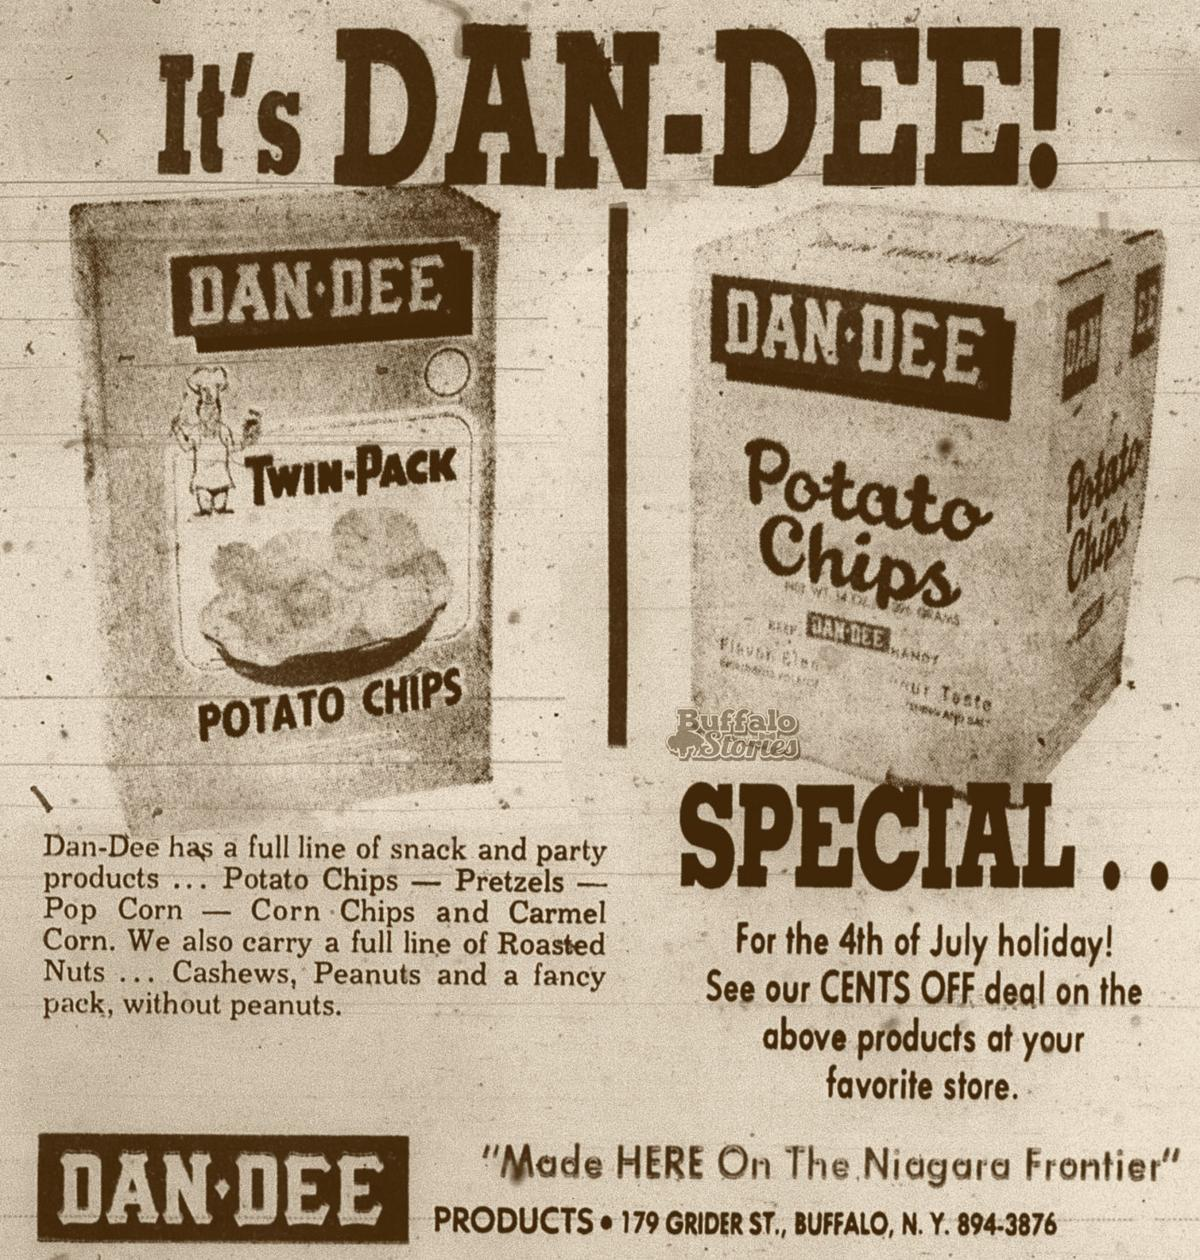 dan-dee-1975-ad-edit